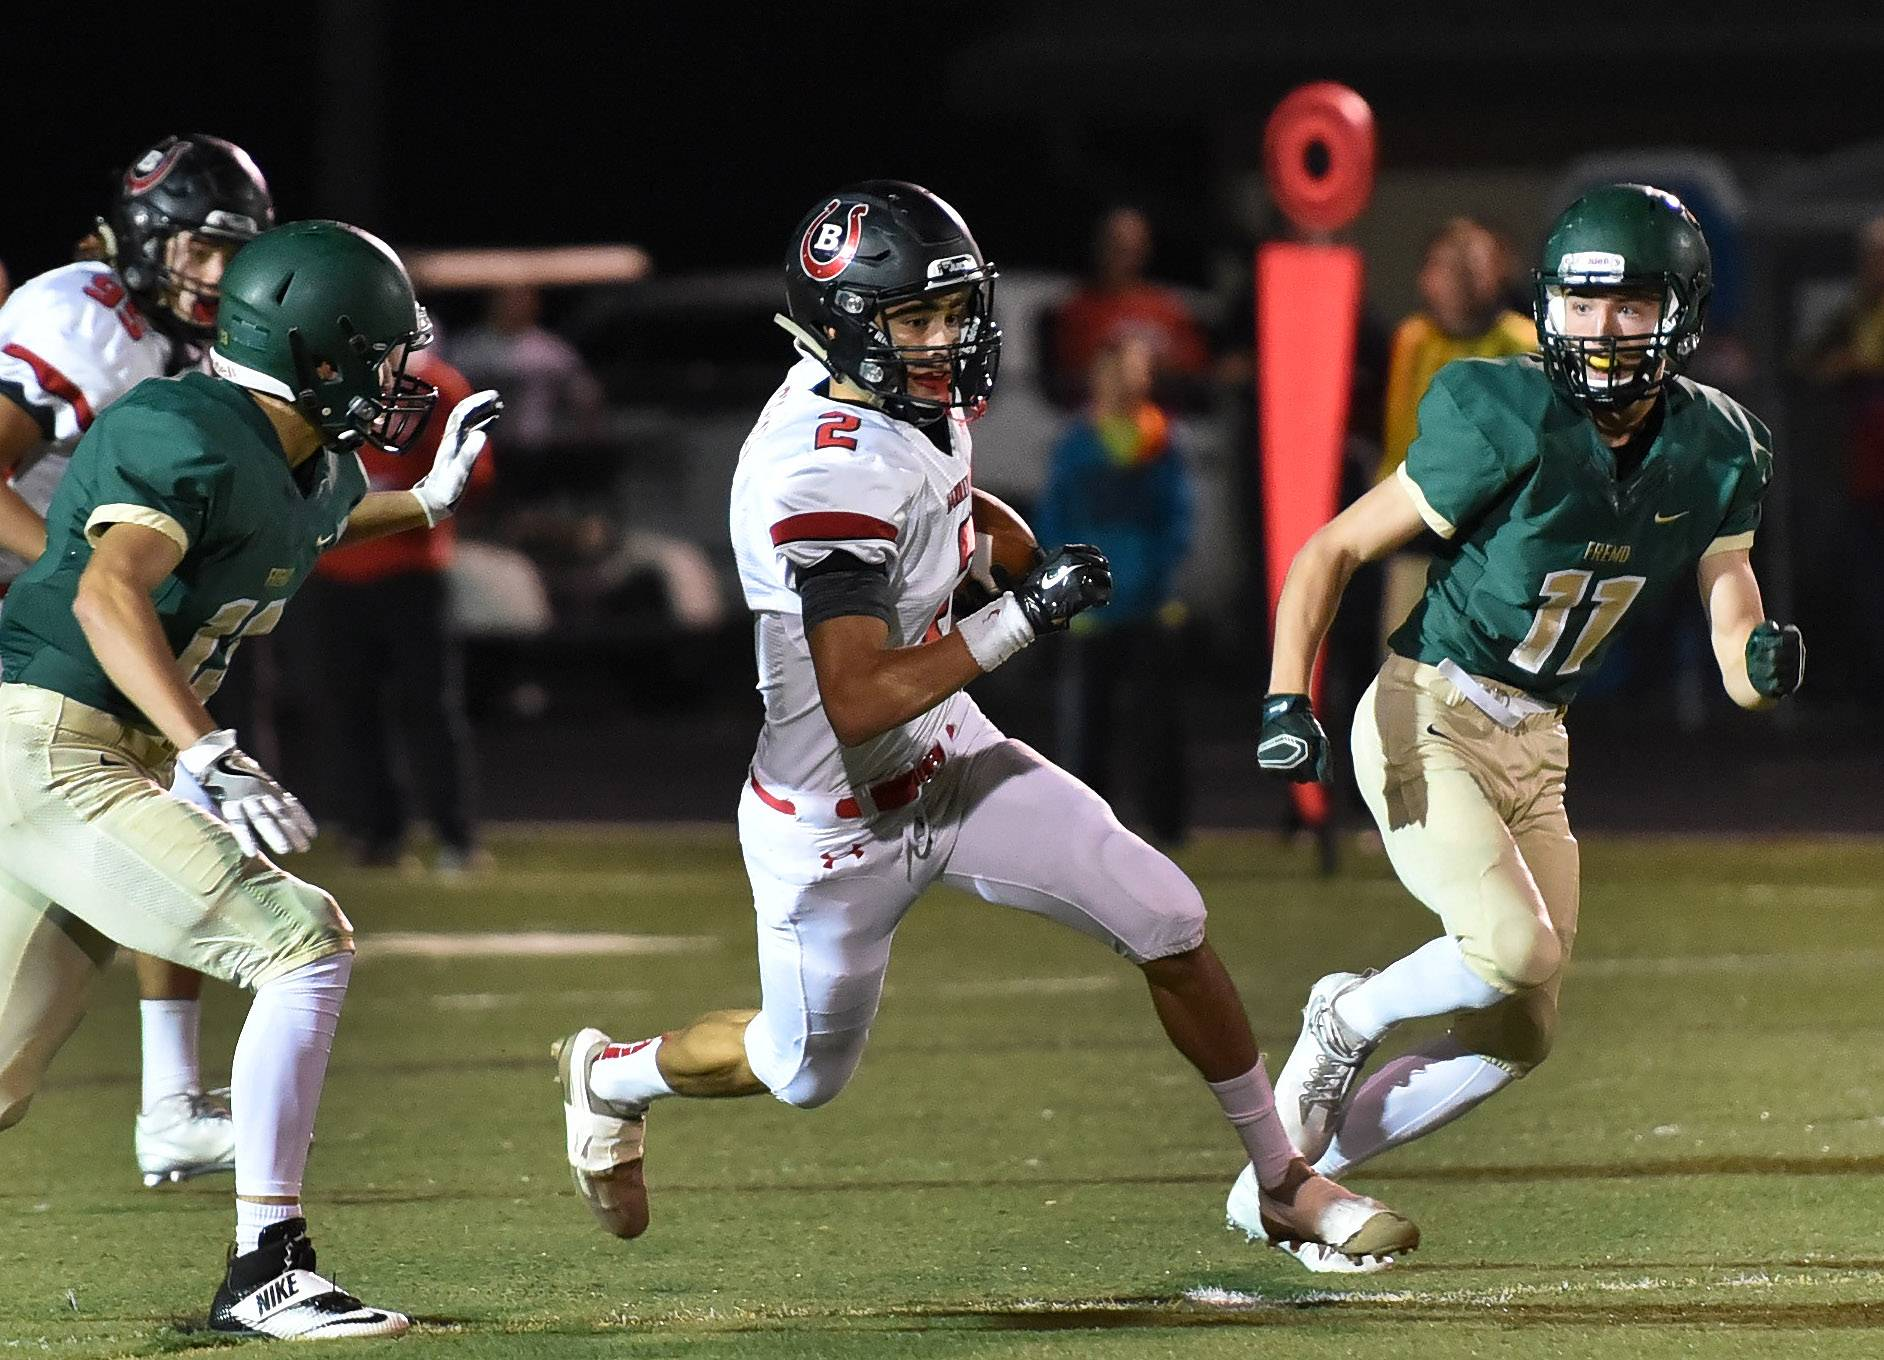 Barrington's Luis Cossio eludes Fremd tacklers.